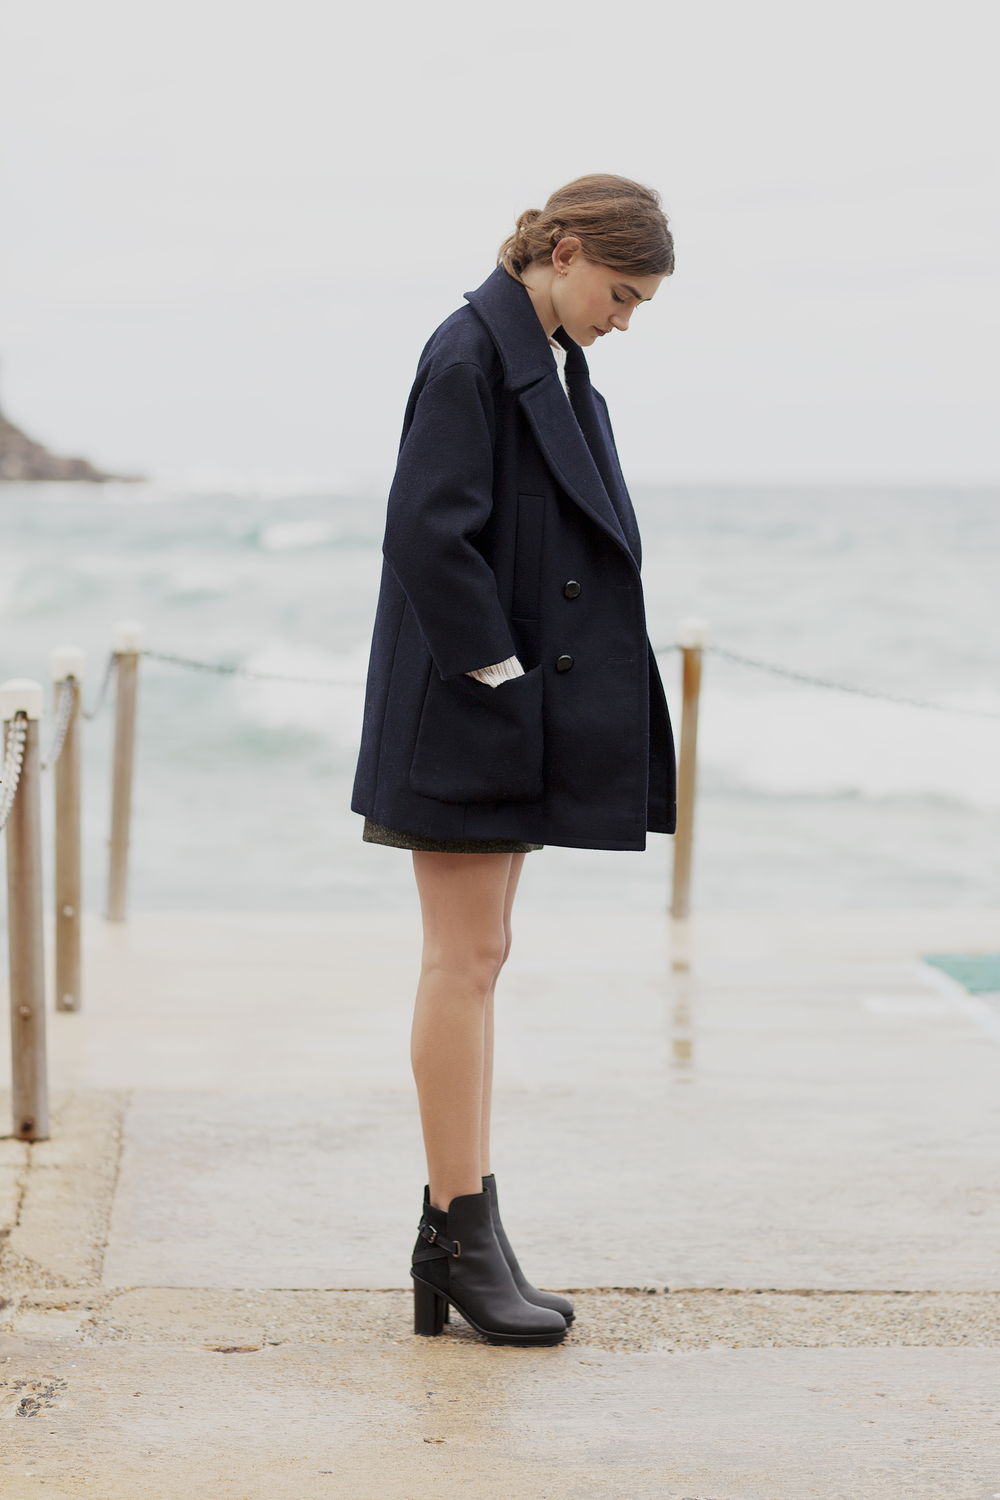 Stylist's own Isabel Marant coat, A.P.C cable-knit sweater from Bloodorange, Acne skirt and boots